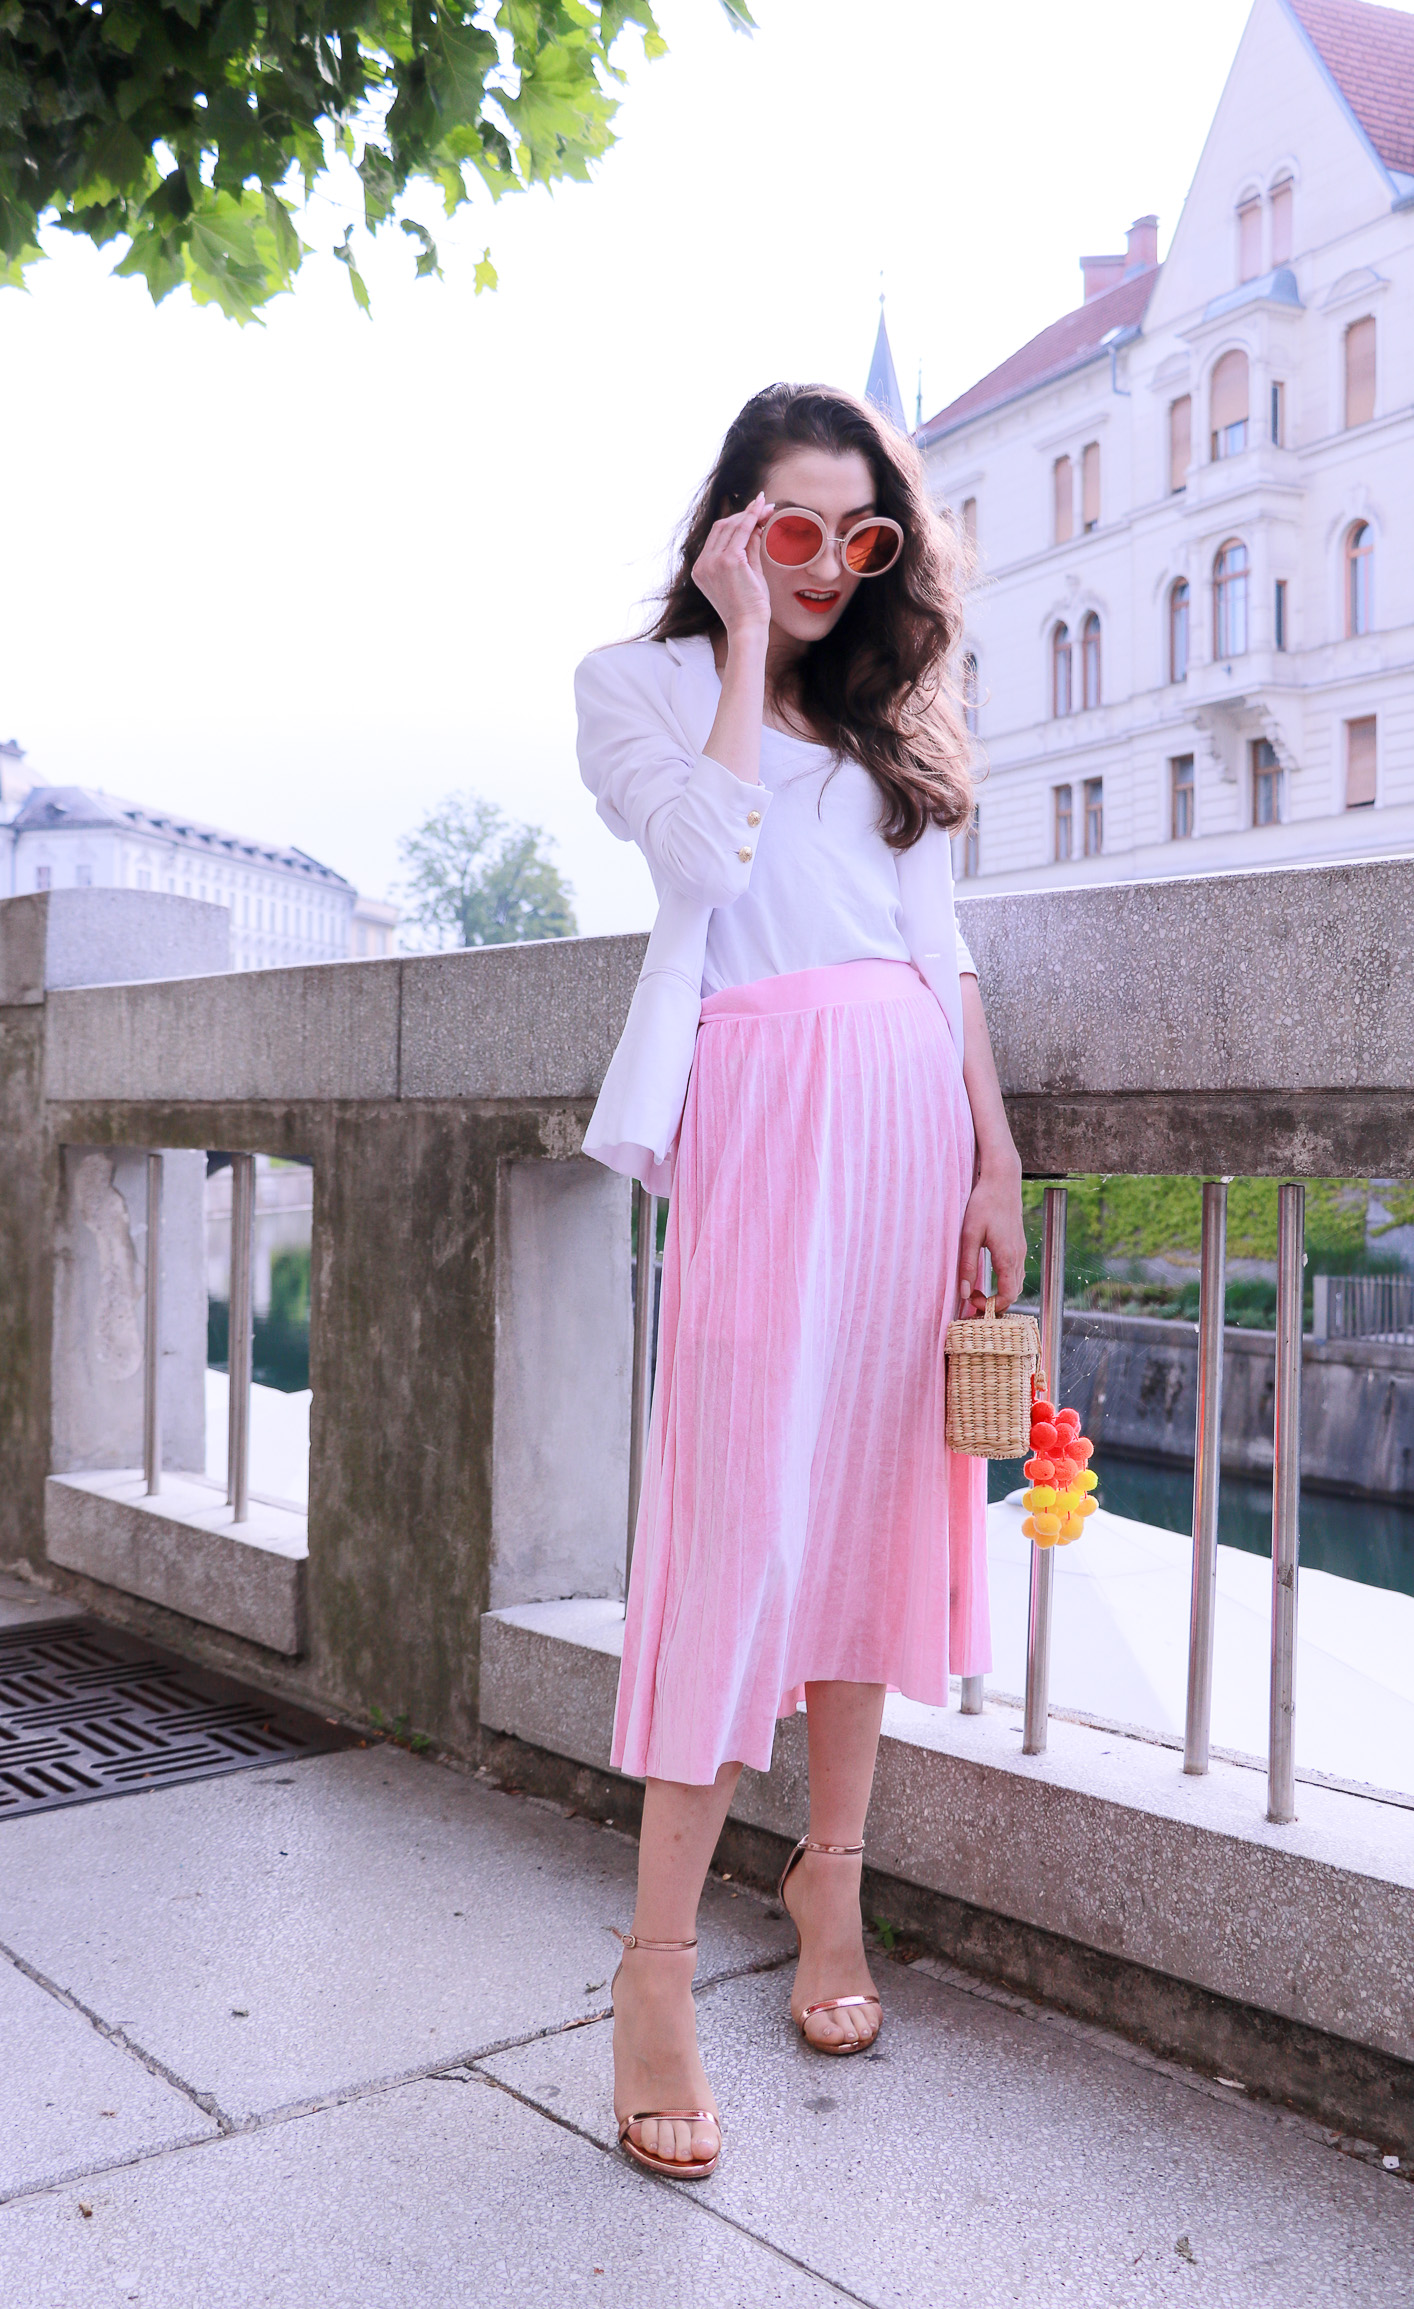 Fashion blogger Veronika Lipar of Brunette From Wall Street answering 5 questions about her, wearing pink midi skirt, Sunday Somewhere round sunglasses, metallic sandals from Stuart Weitzman